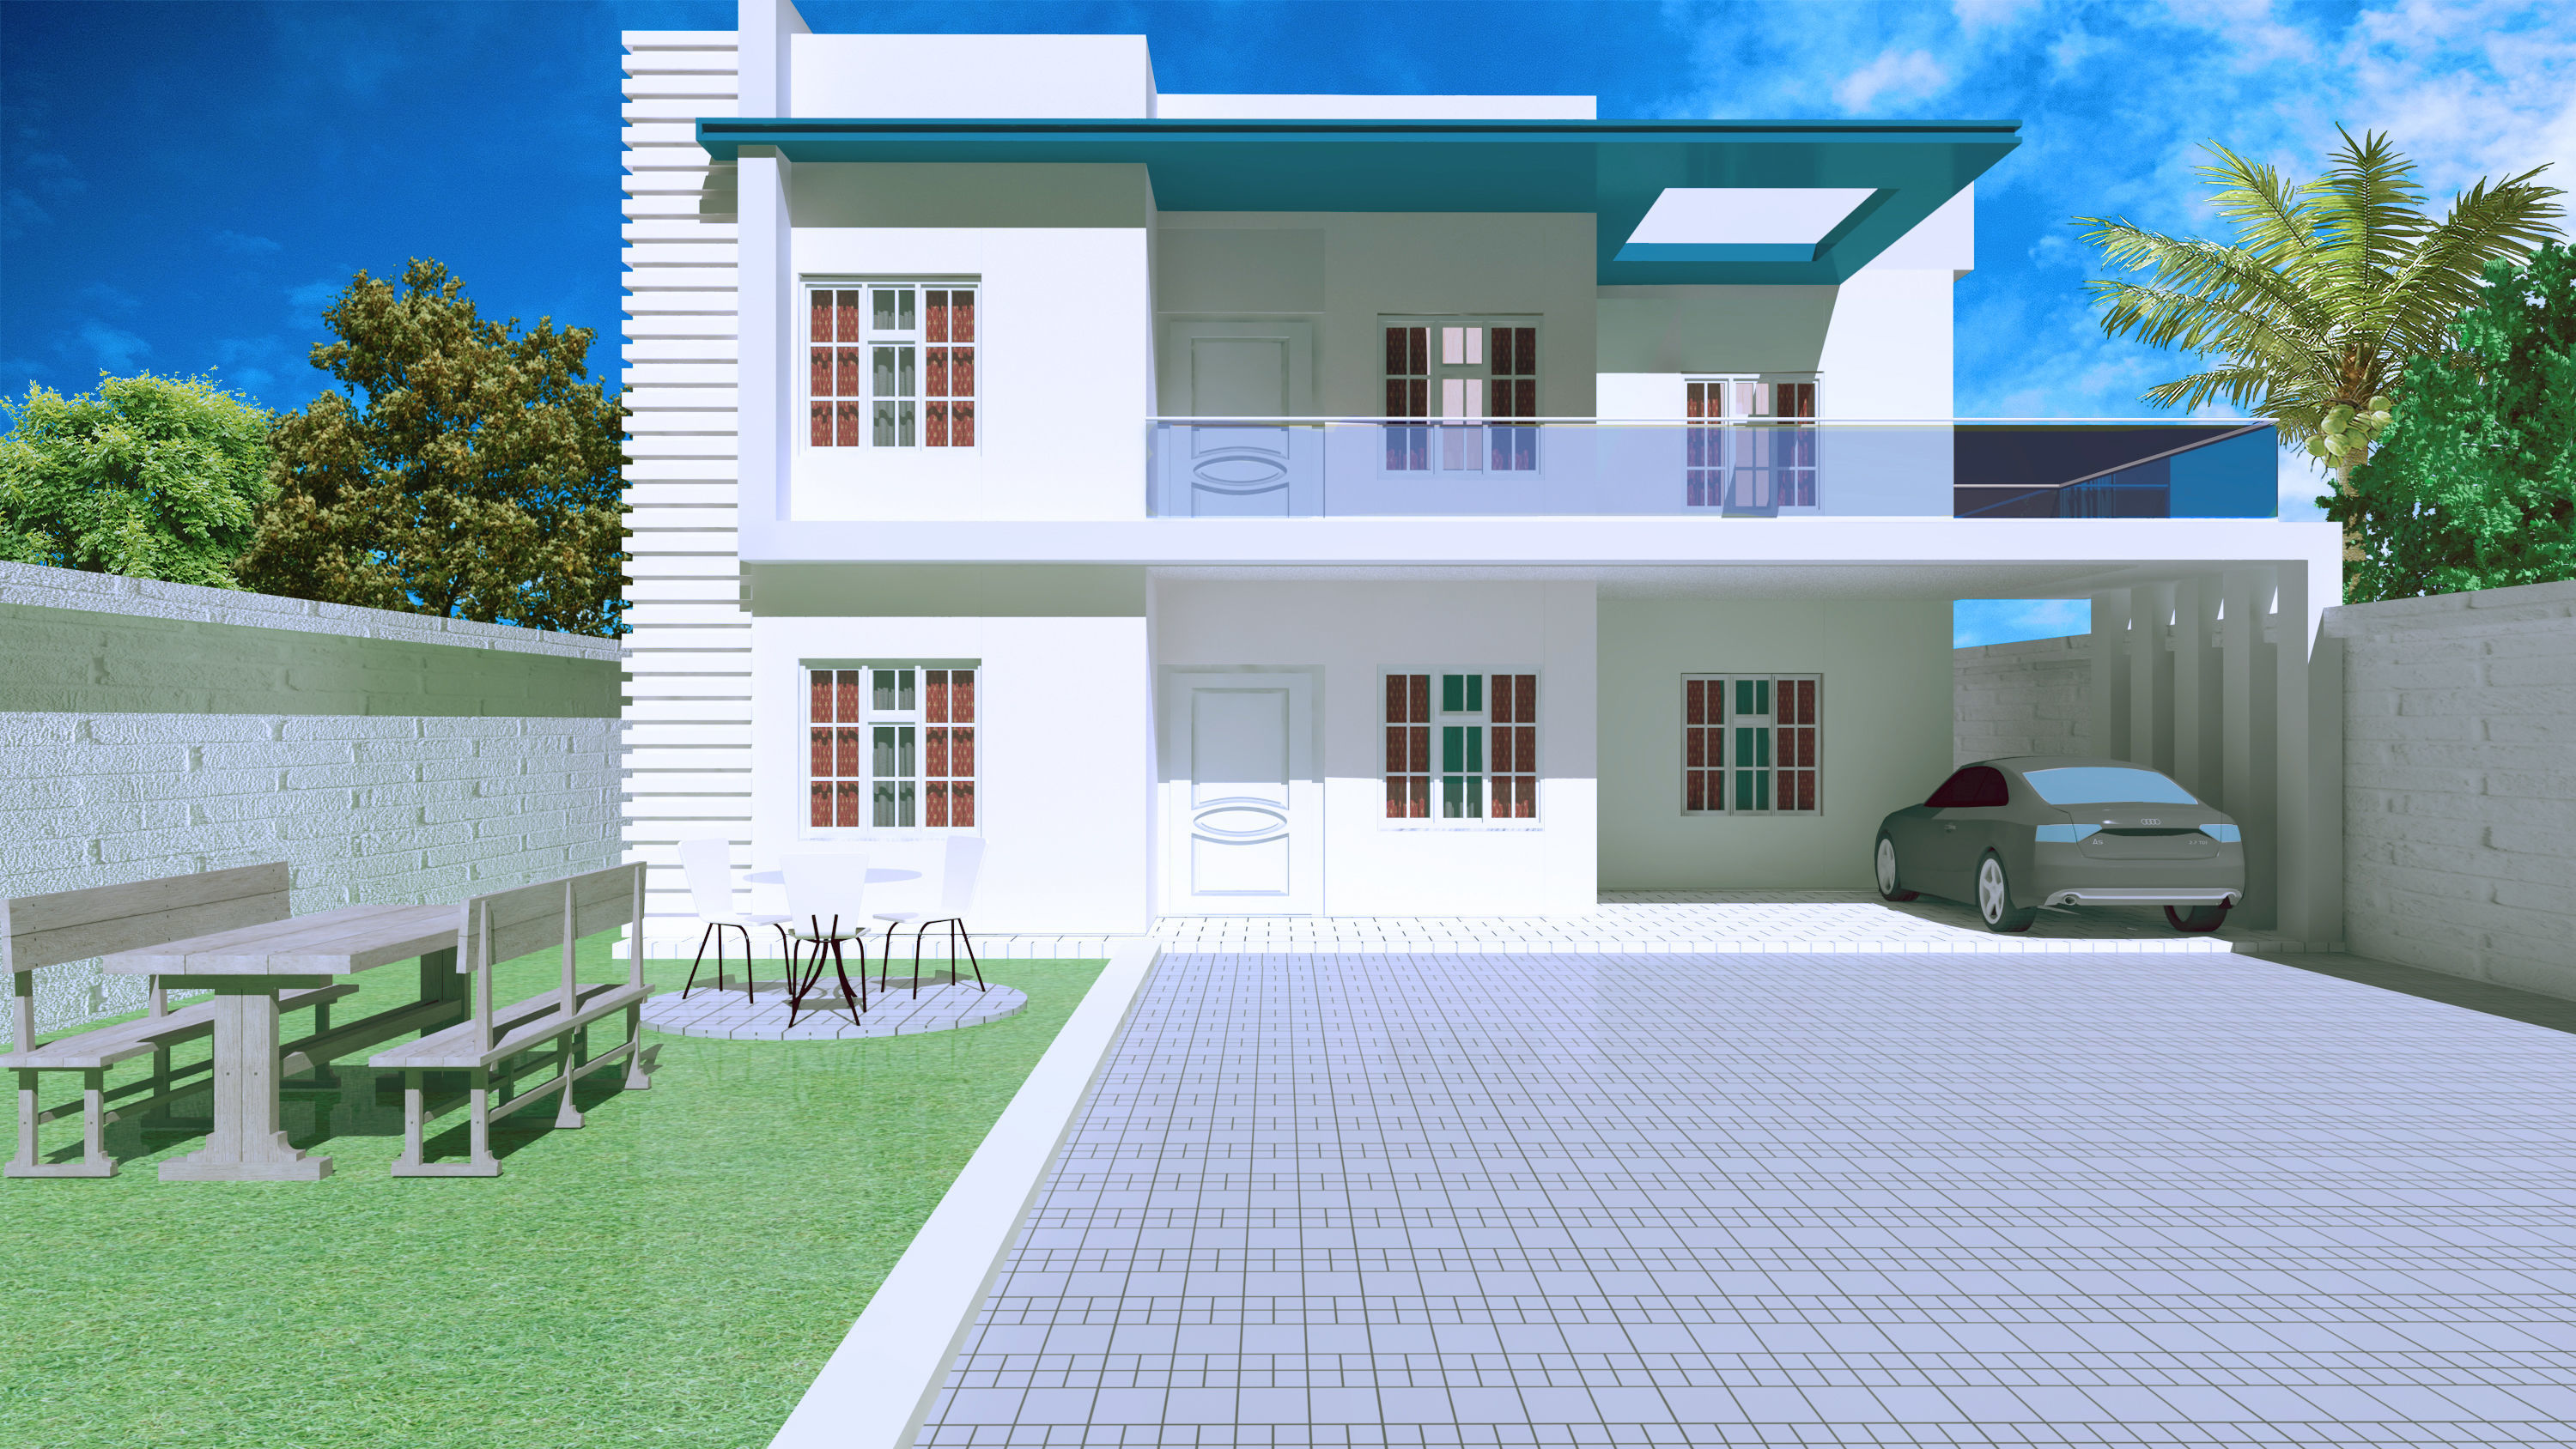 Modern House Exterior Design 3D Model  CGTrader